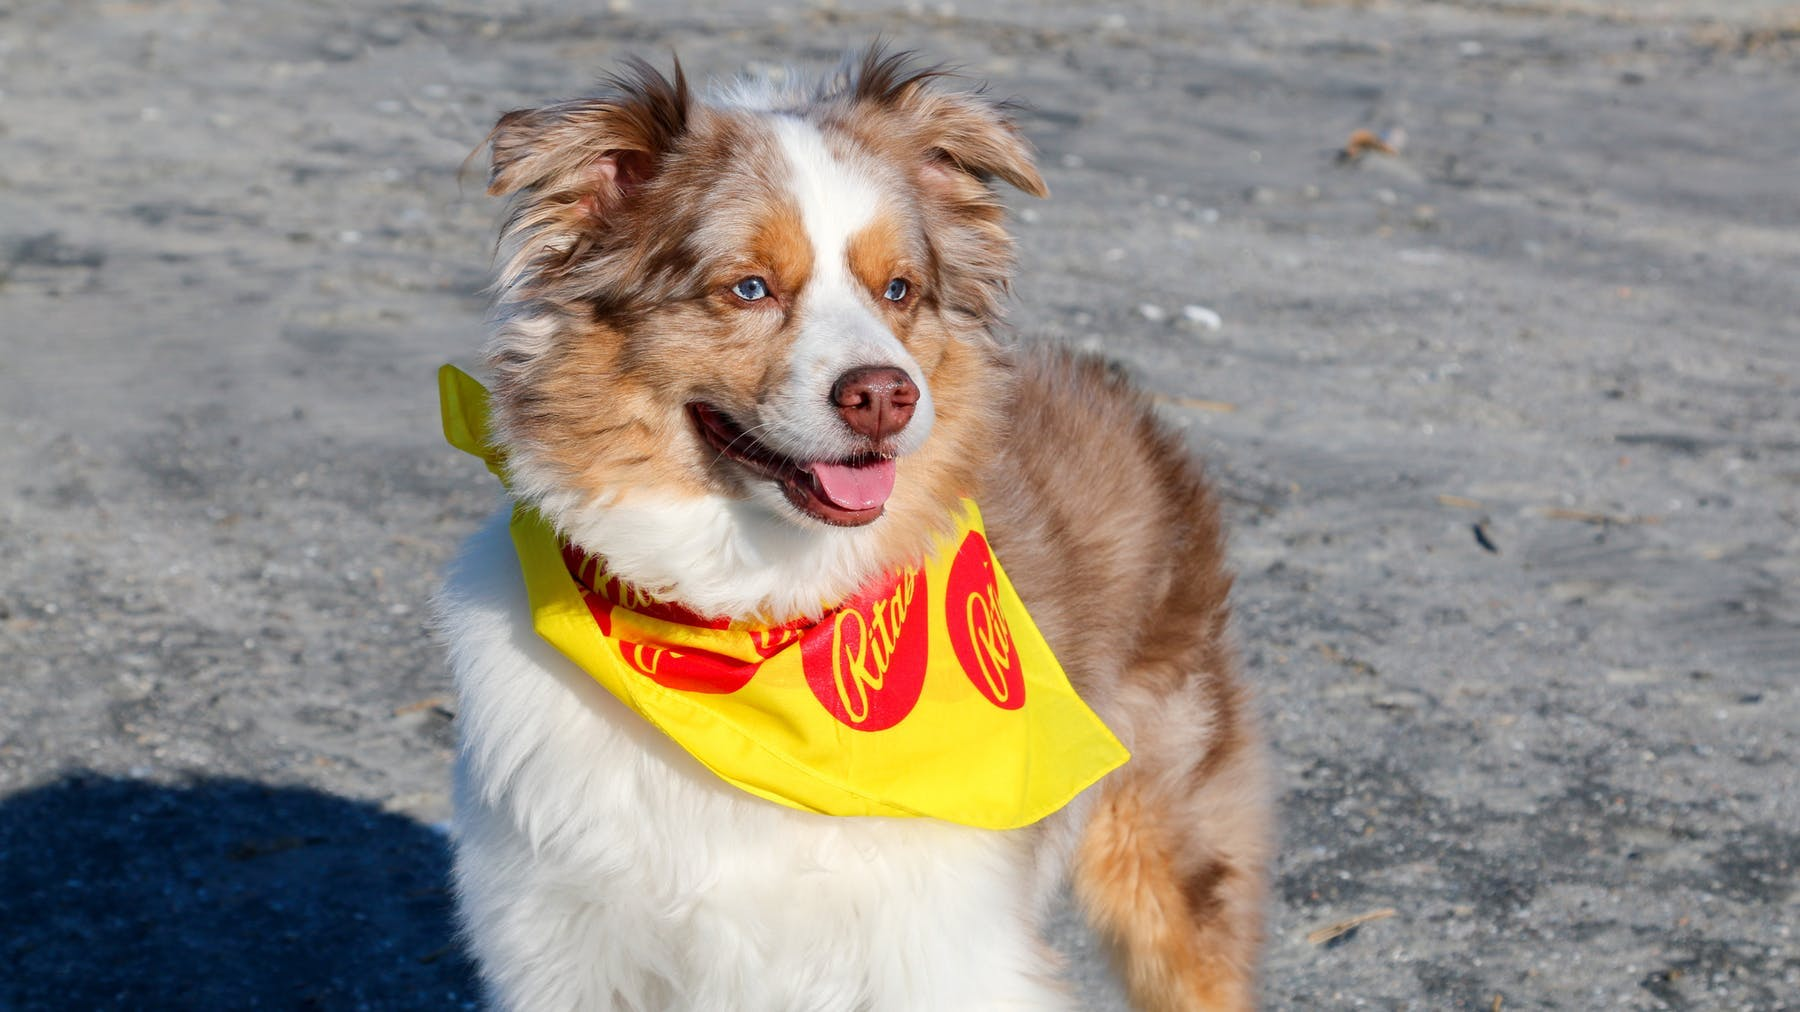 a dog wearing a yellow frisbee